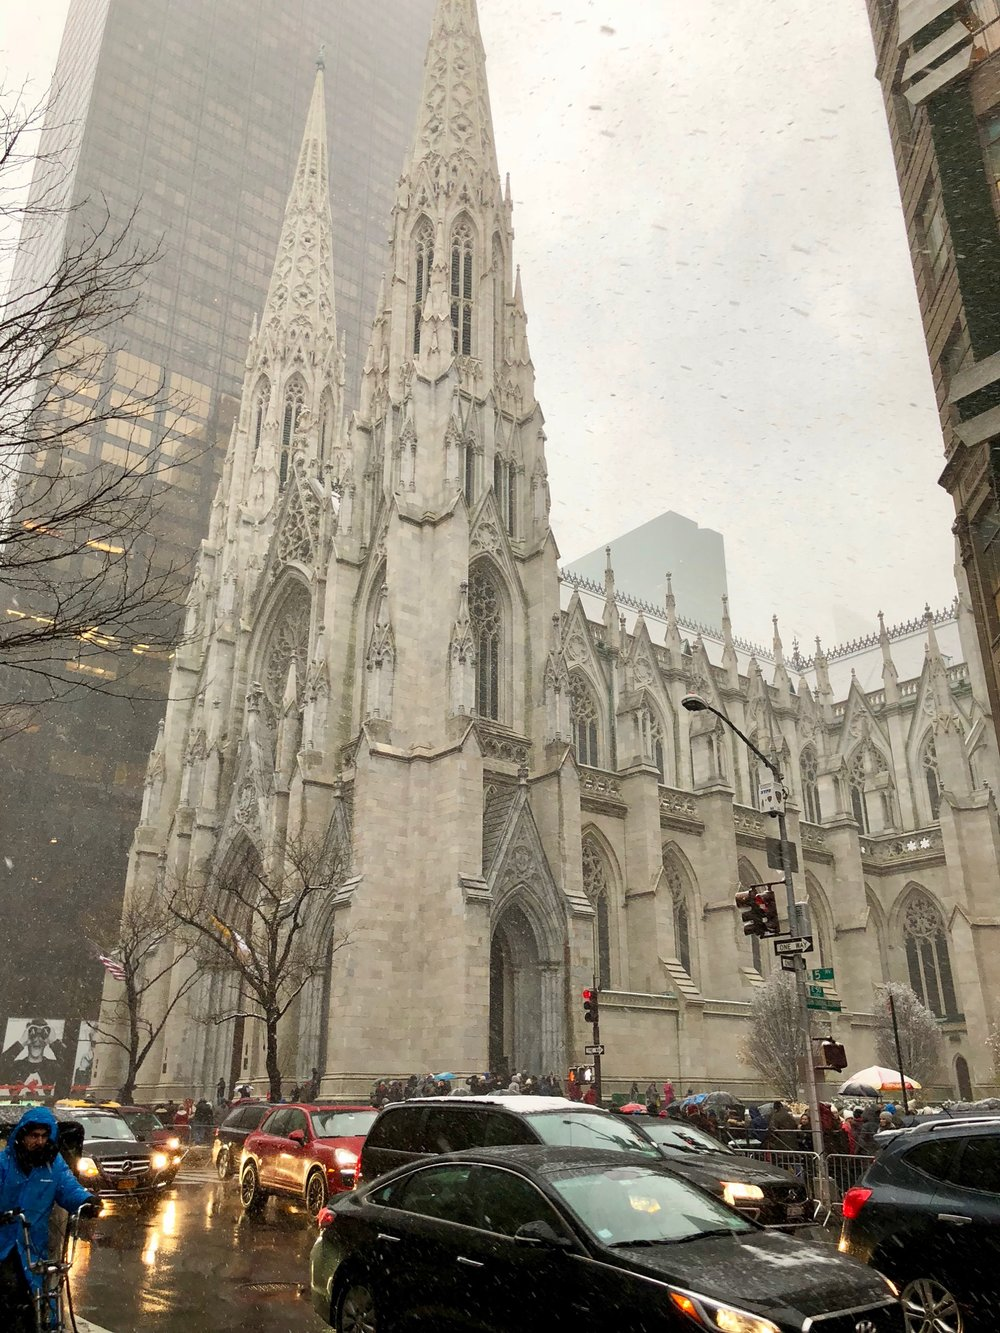 St. Patrick's Cathedral, the towering Neo-Gothic church from 1879 with twin spires and storied history opposite Rockefeller Center.